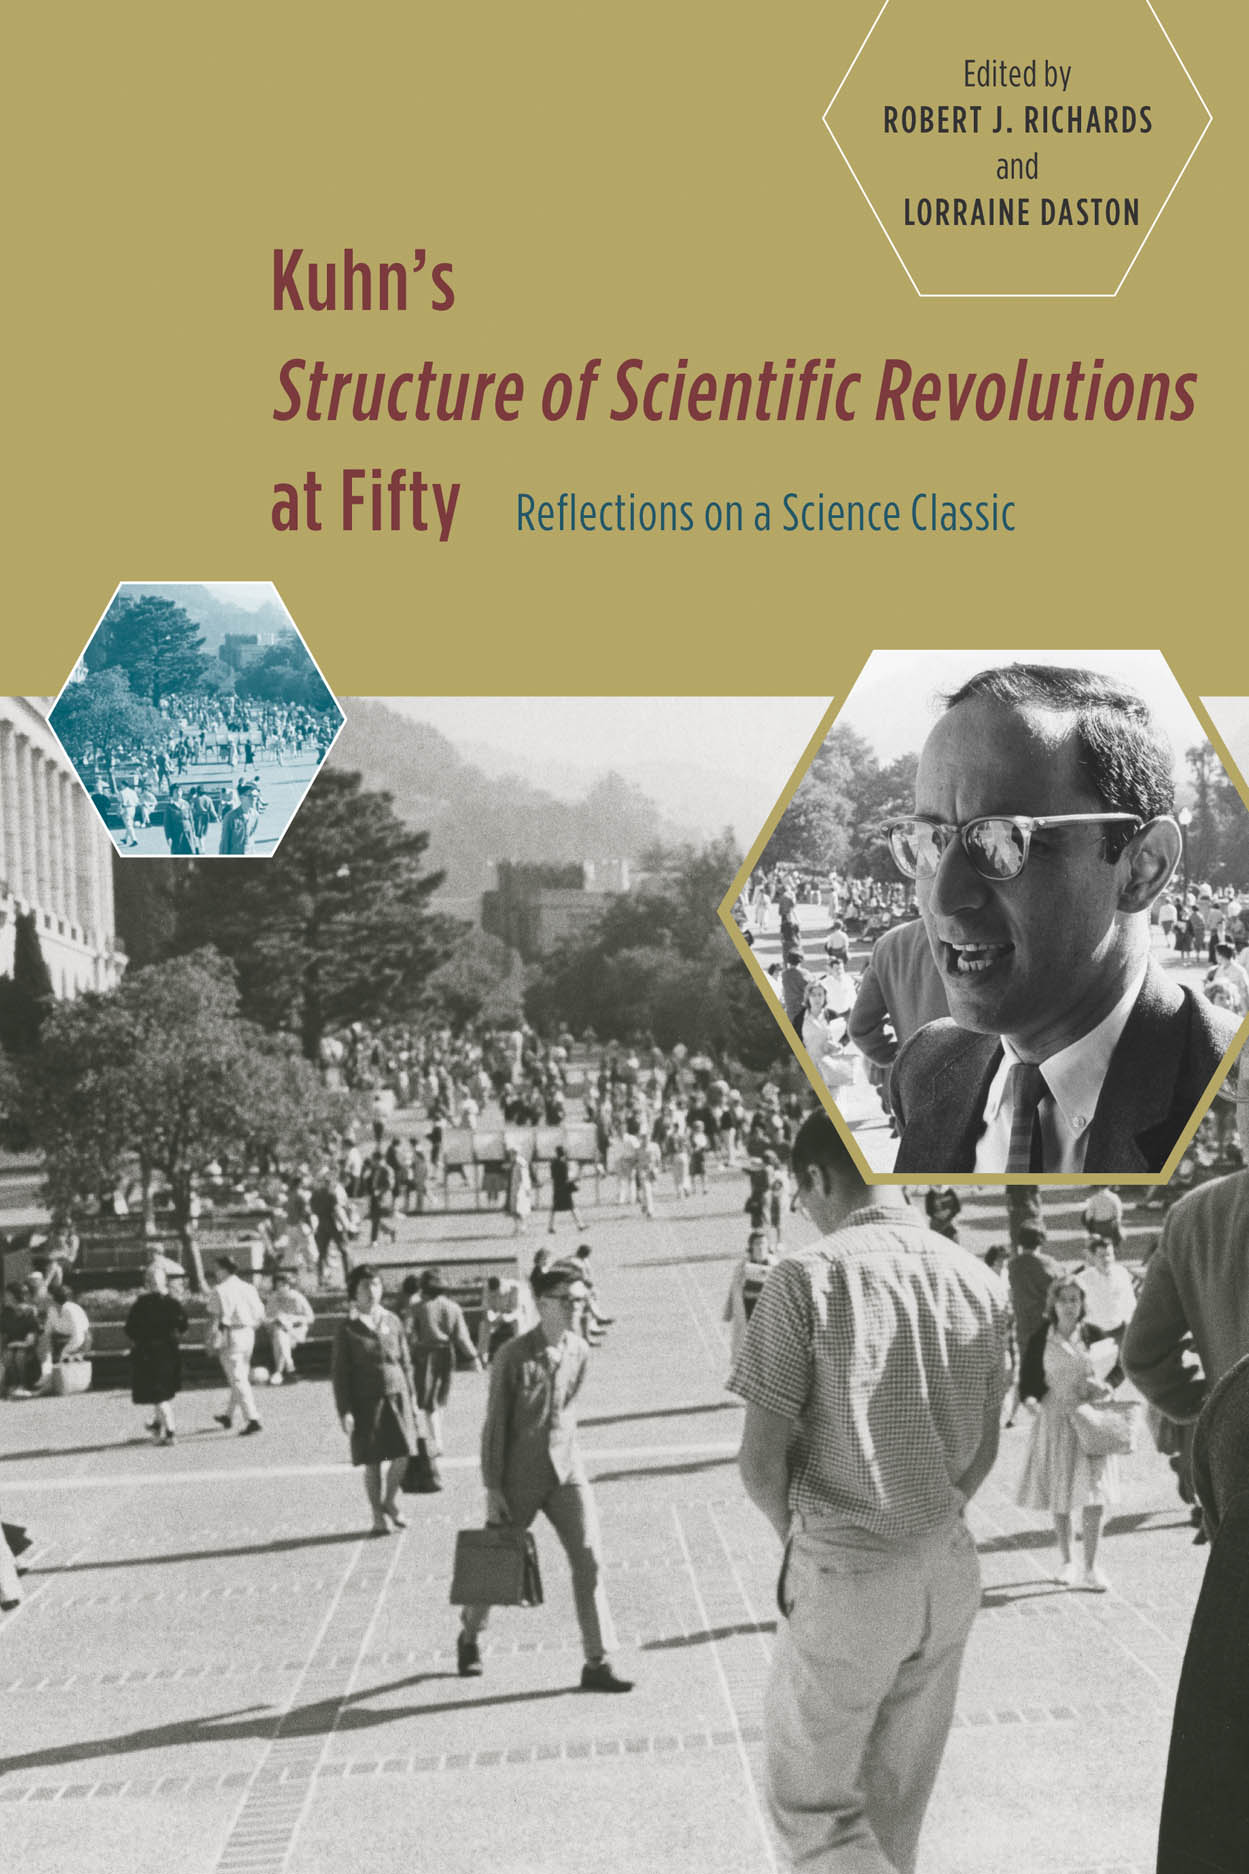 Kuhn's 'Structure of Scientific Revolutions' at Fifty